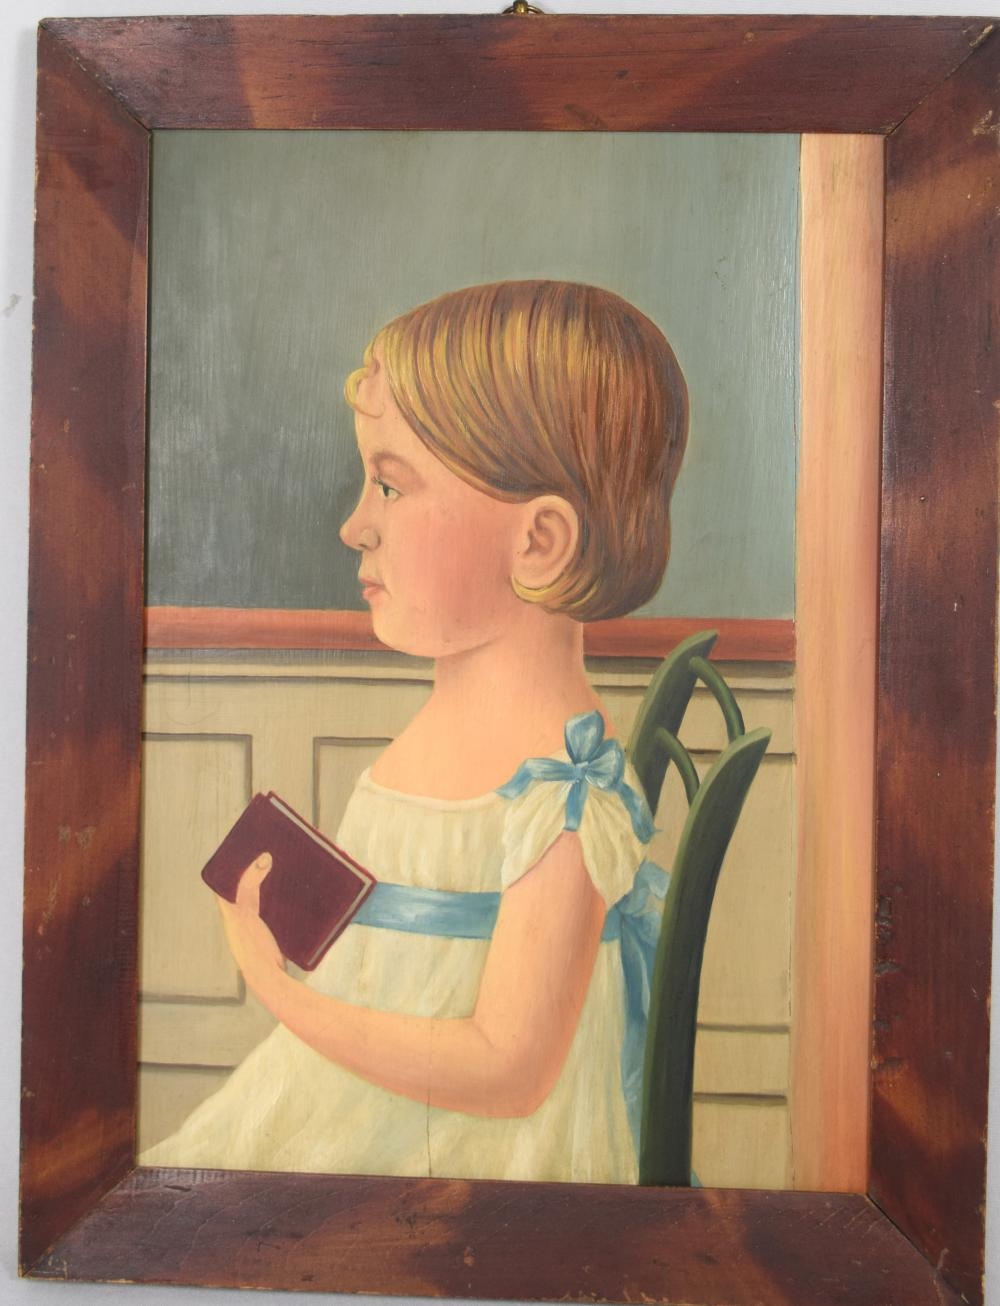 EARLY 19TH C AMERICAN SCHOOL FOLK ART PAINTING OF YOUNG GIRL: